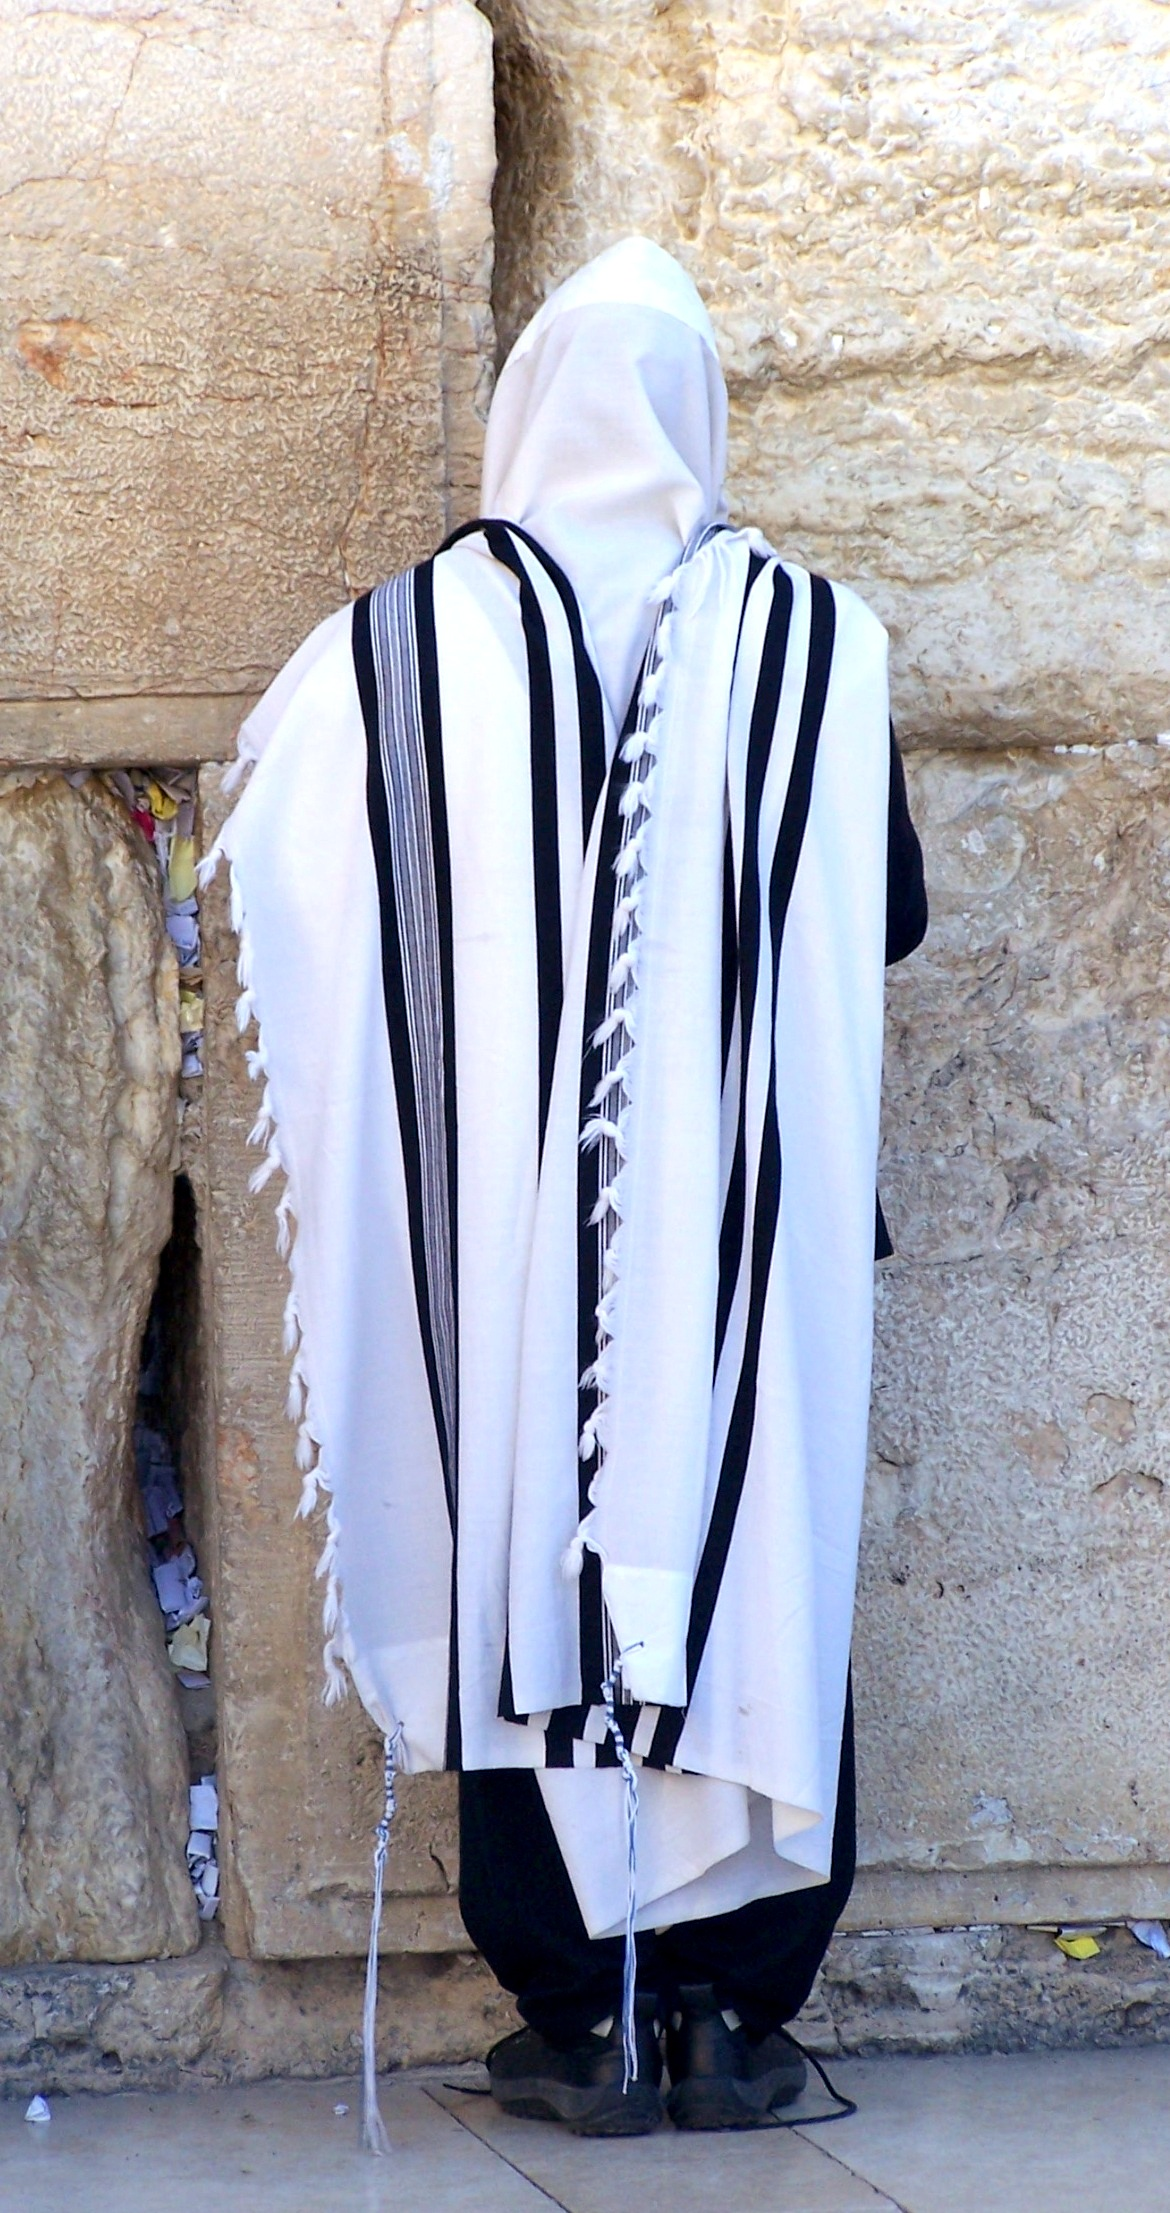 Wall ceremonial garb for Yom Kippur; white kittel robes, draped with black and white prayer shawls called tallits and a white hood or kippah for the head. Photo by Carol L. Bowman.